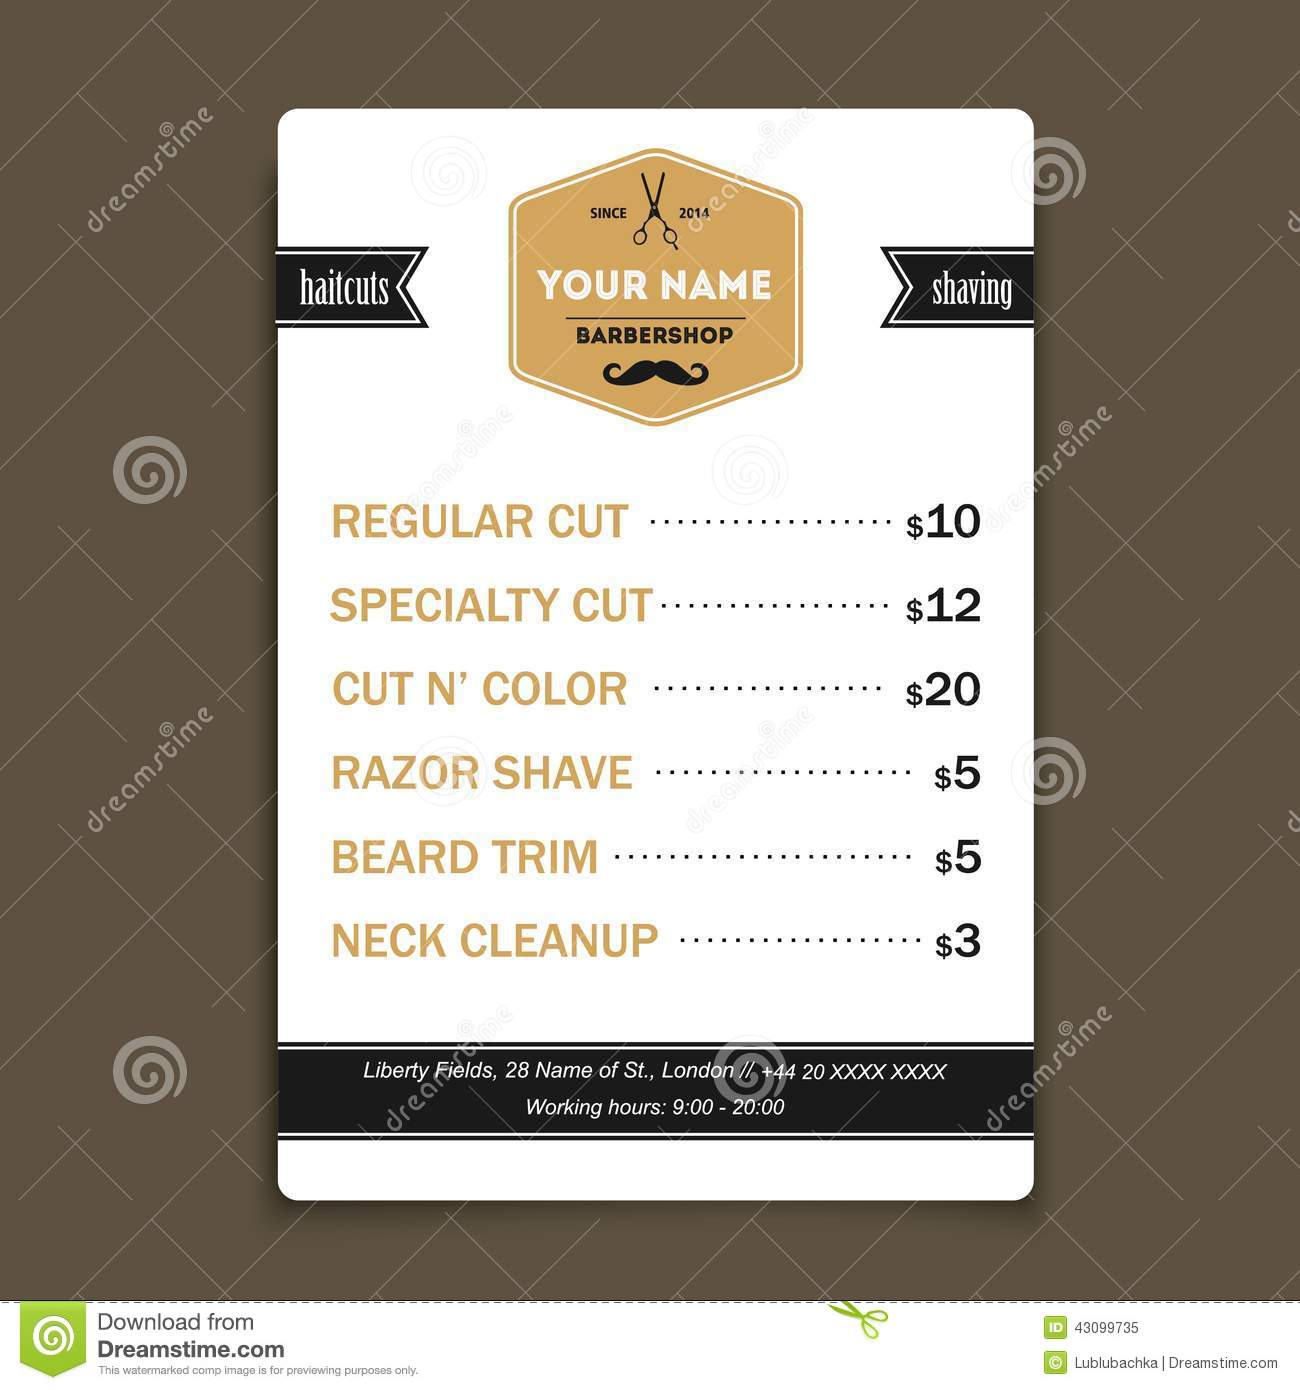 Hair salon barber shop services list design template stock vector hair salon barber shop services list design template cheaphphosting Images